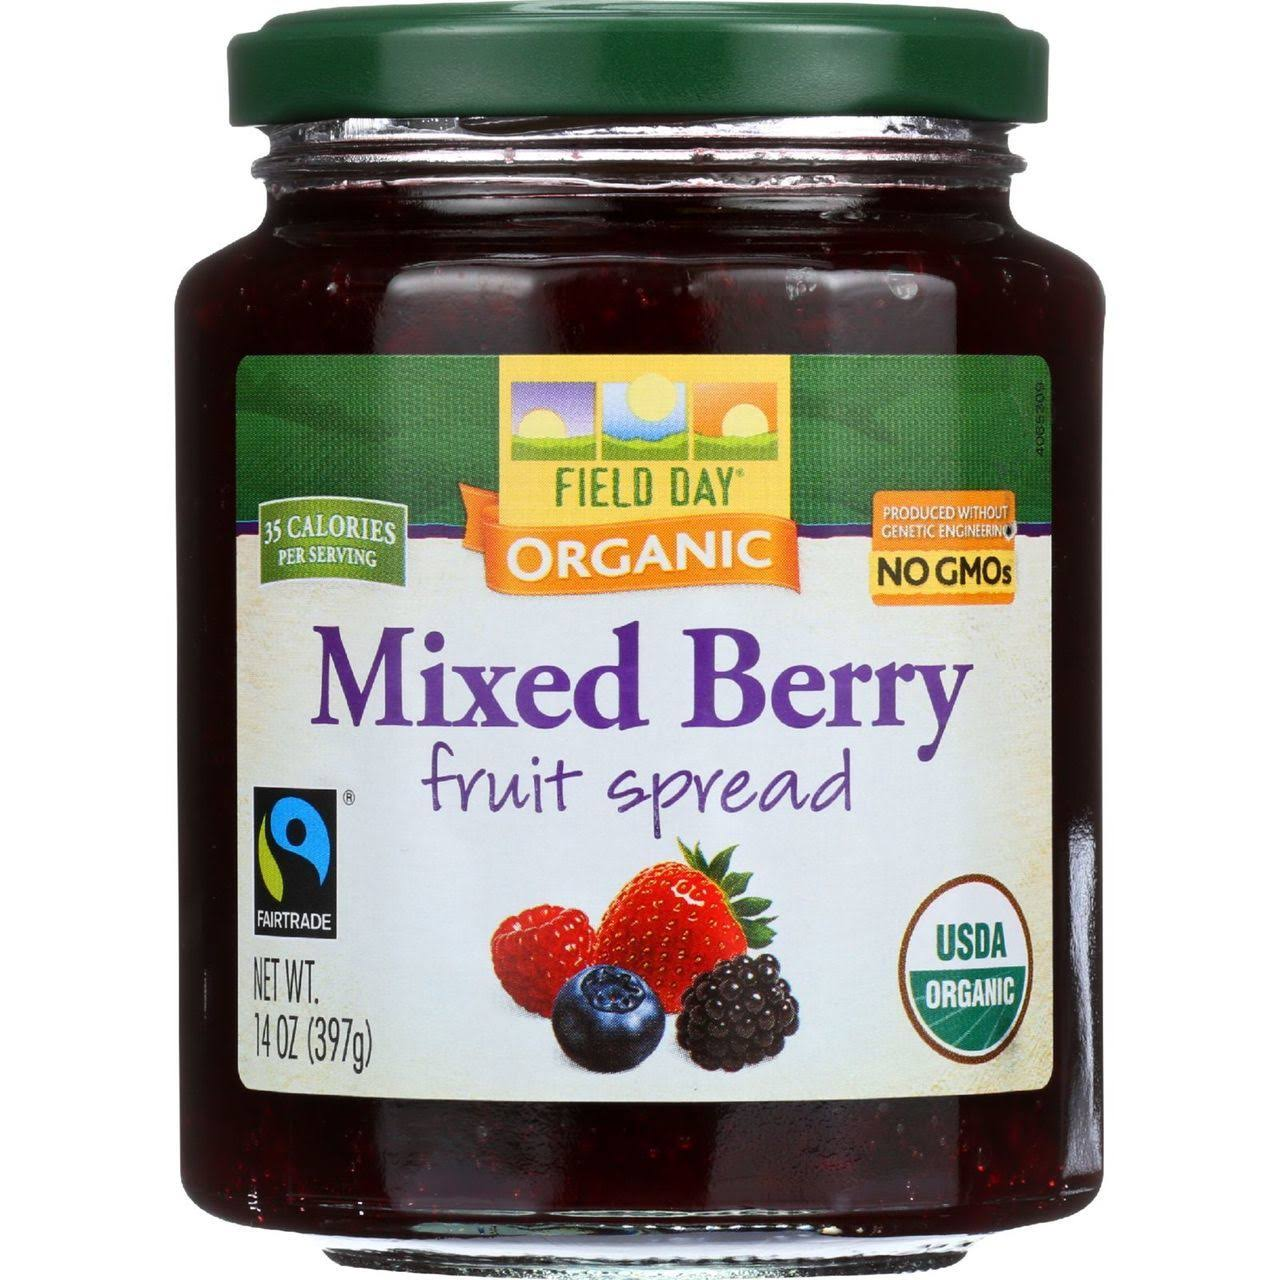 Field Day Organic Fruit Spread - Mixed Berry - 14 oz